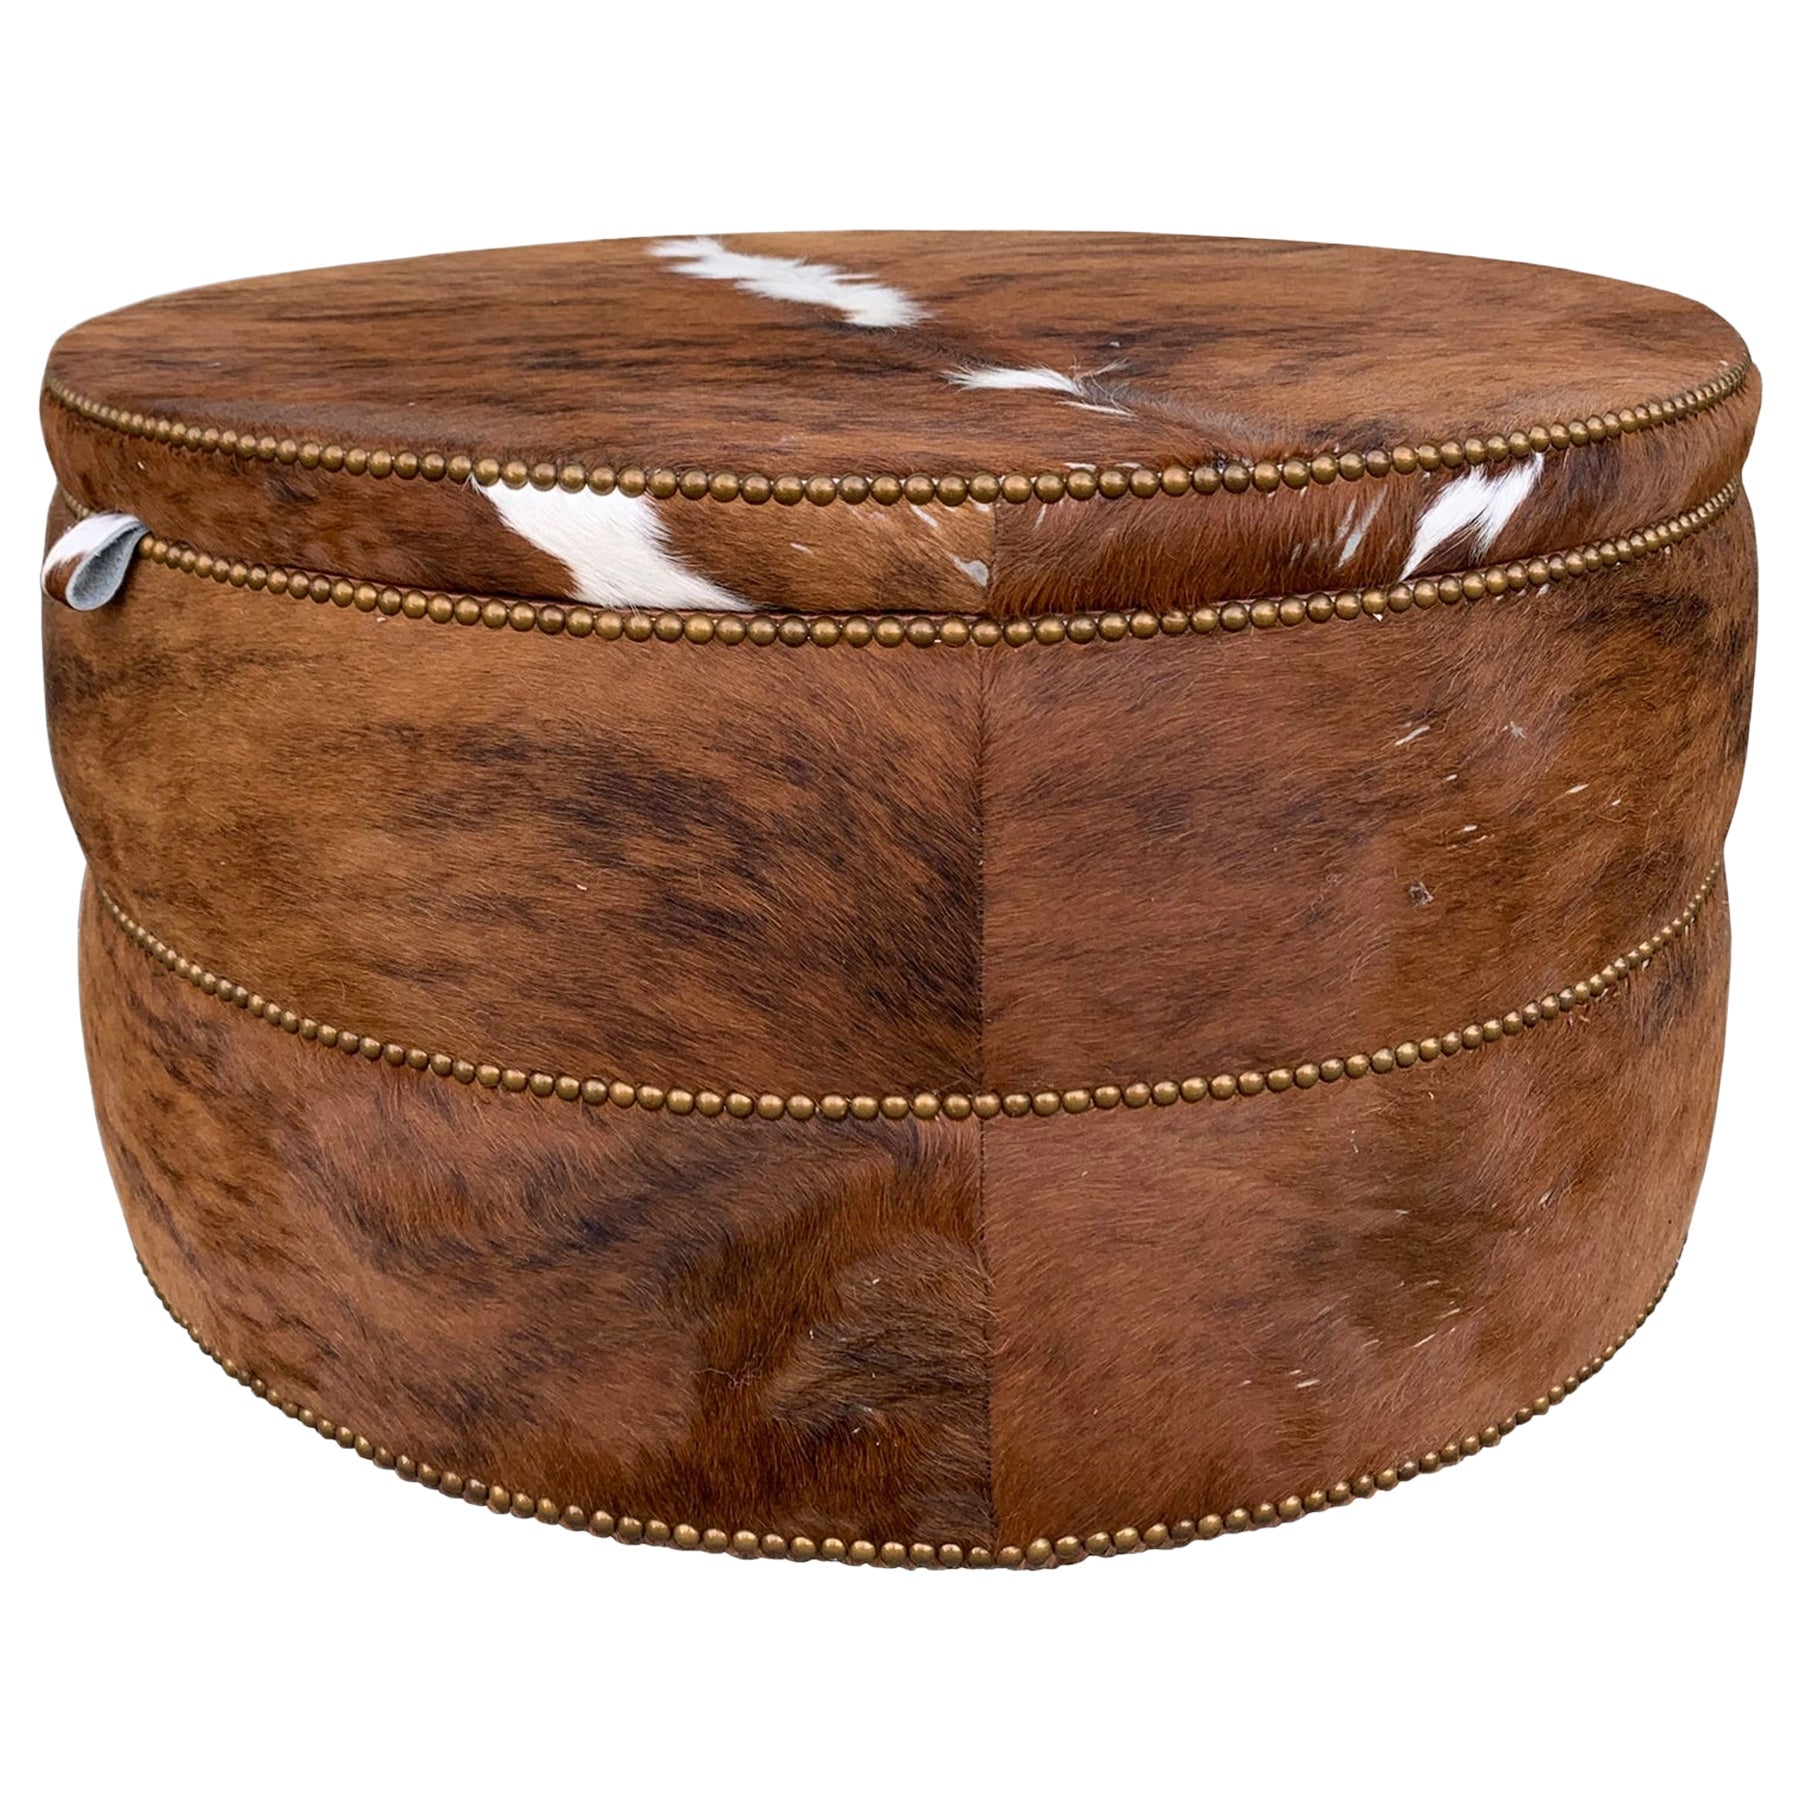 Round Coffee Table Ottoman Or Bar Upholstered In Brown Cowhide